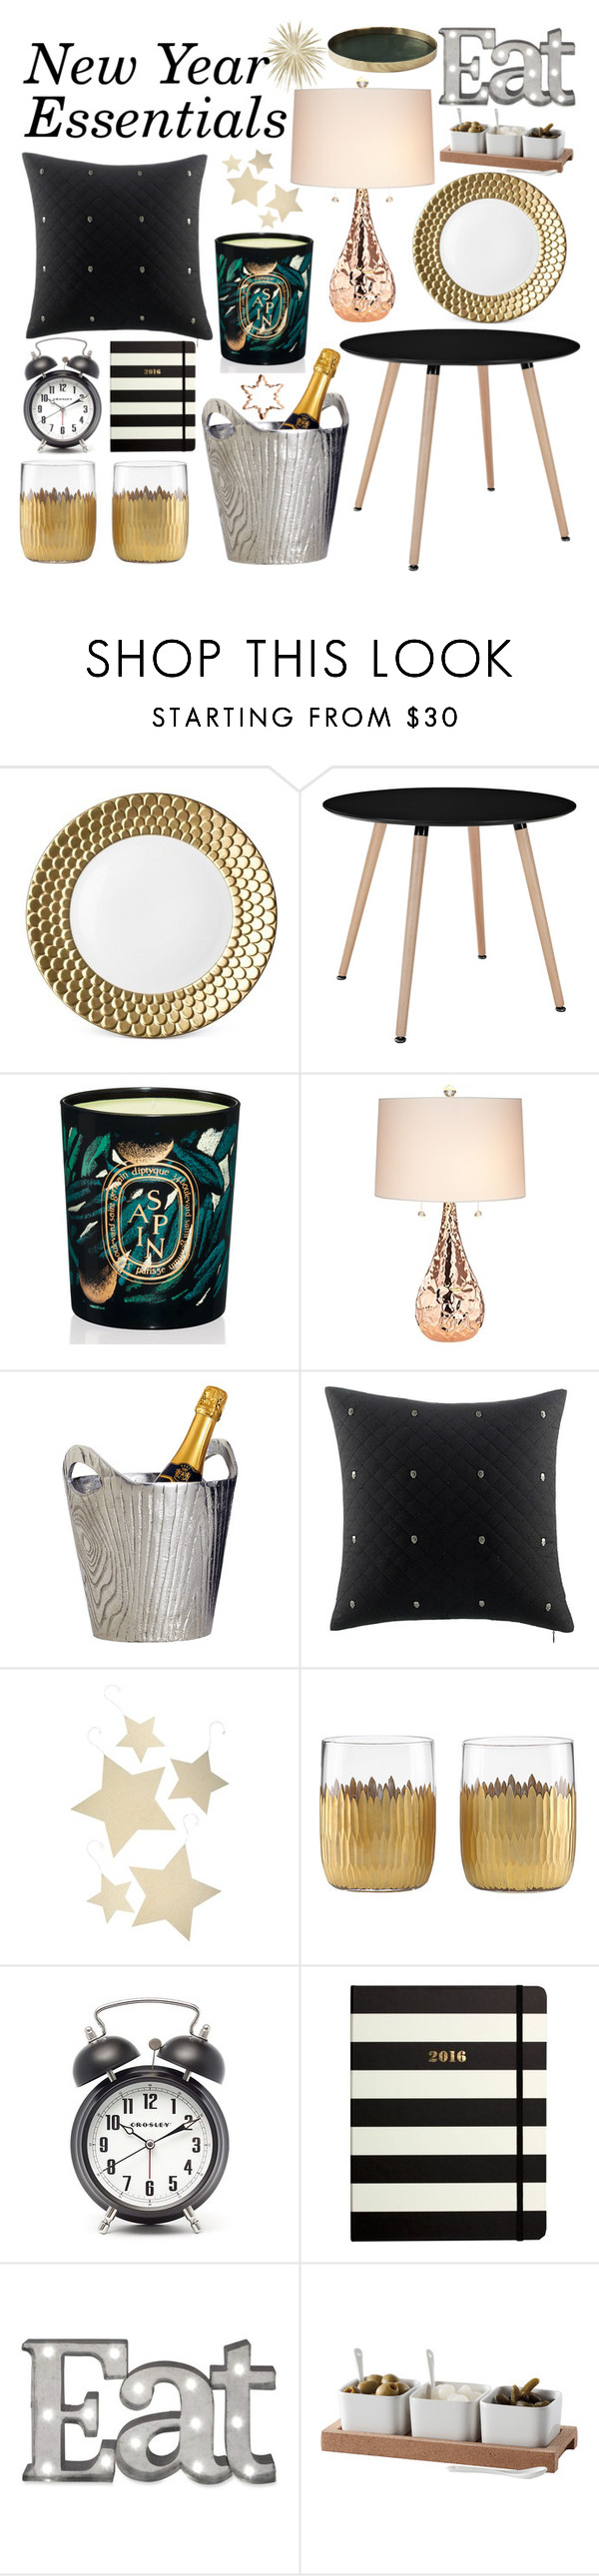 """""""New Year Home Decor Essentials"""" by jessica-hearts ❤ liked on Polyvore featuring interior, interiors, interior design, home, home decor, interior decorating, L'Objet, Diptyque, Kathy Ireland and Dot & Bo"""